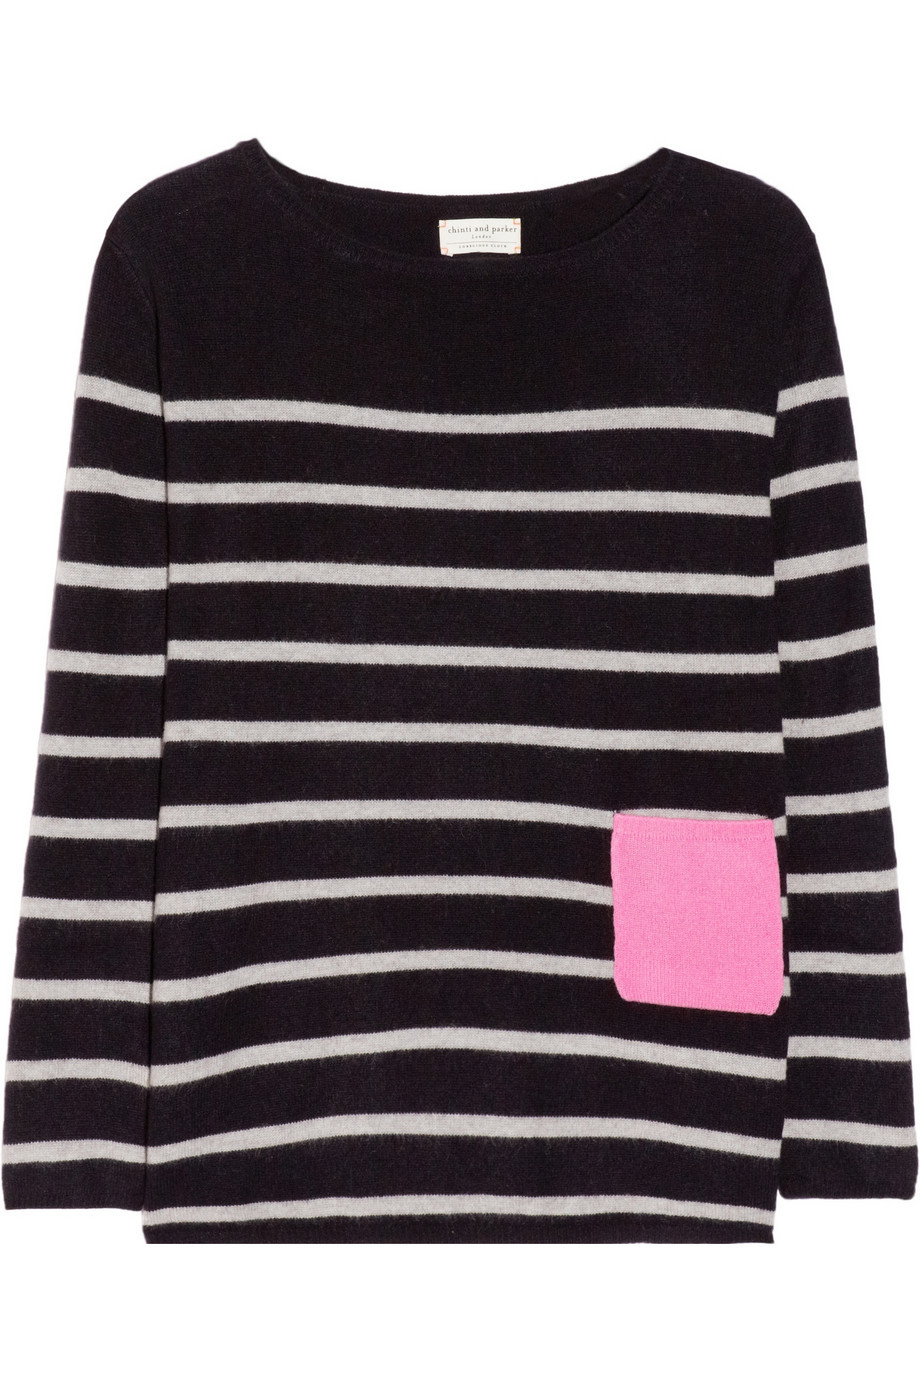 Chinti and Parker   Striped cashmere sweater   NET-A-PORTER.COM_files.jpg